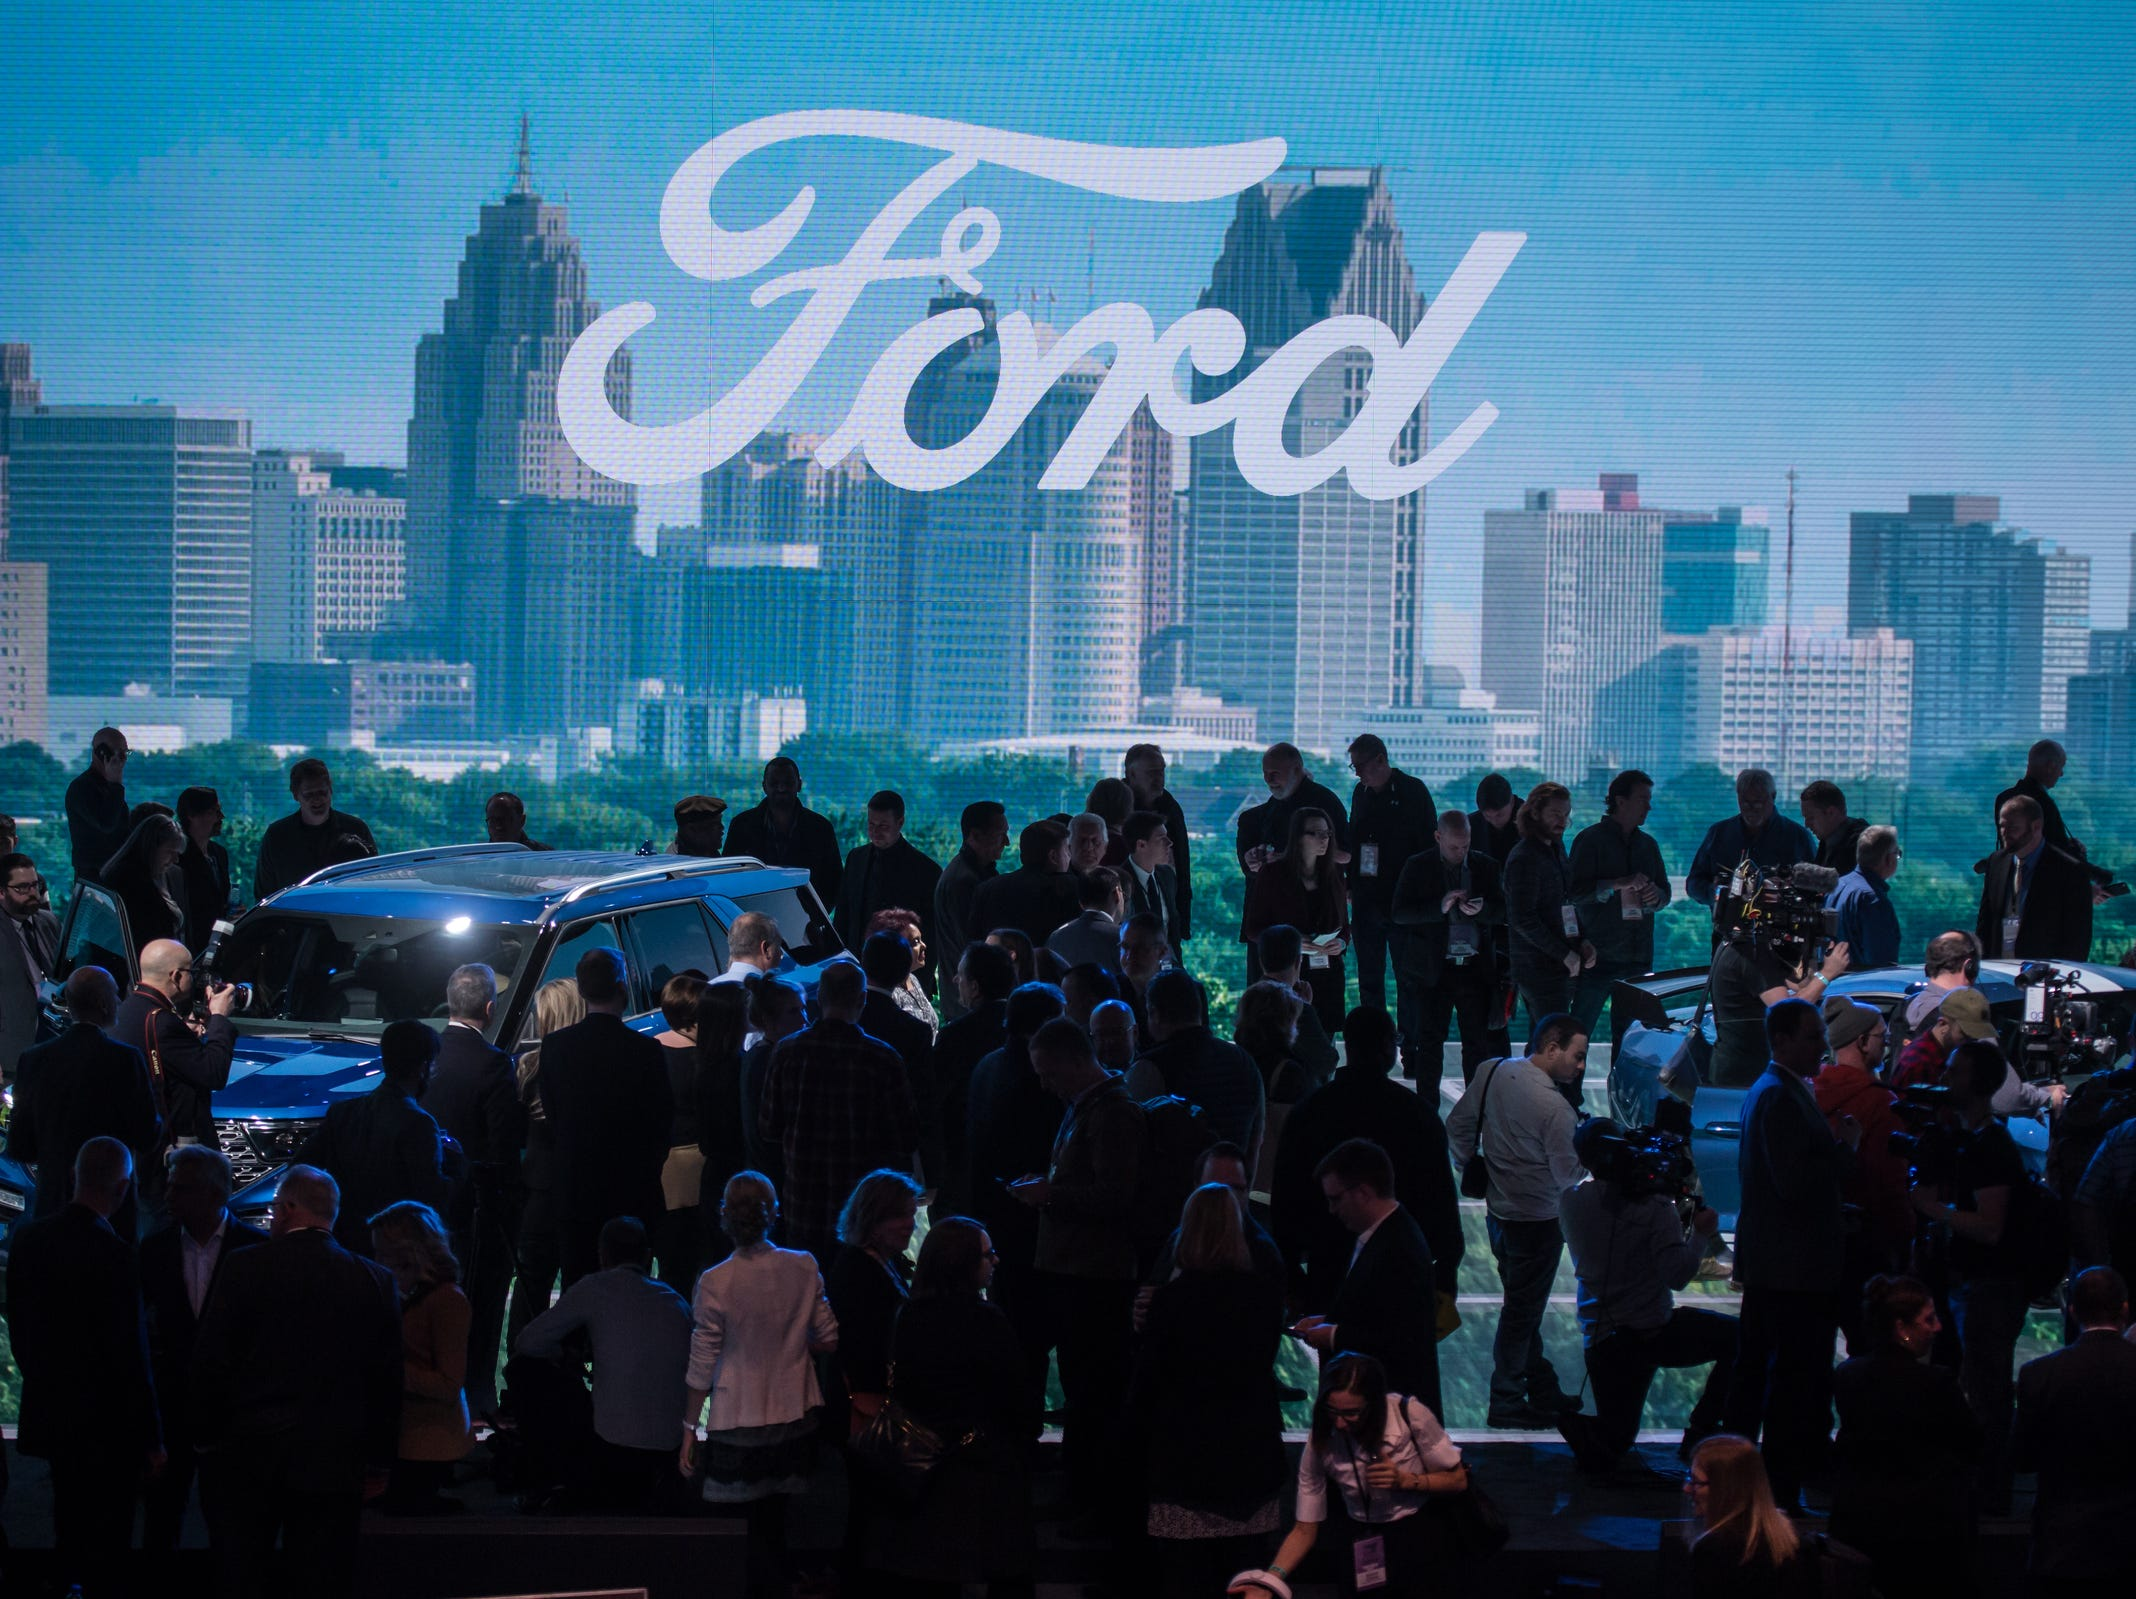 Media crowd around the vehicles revealed for Ford Motor Co. during the 2019 North American International Auto Show held at Cobo Center in downtown Detroit on Monday, Jan. 14, 2019.